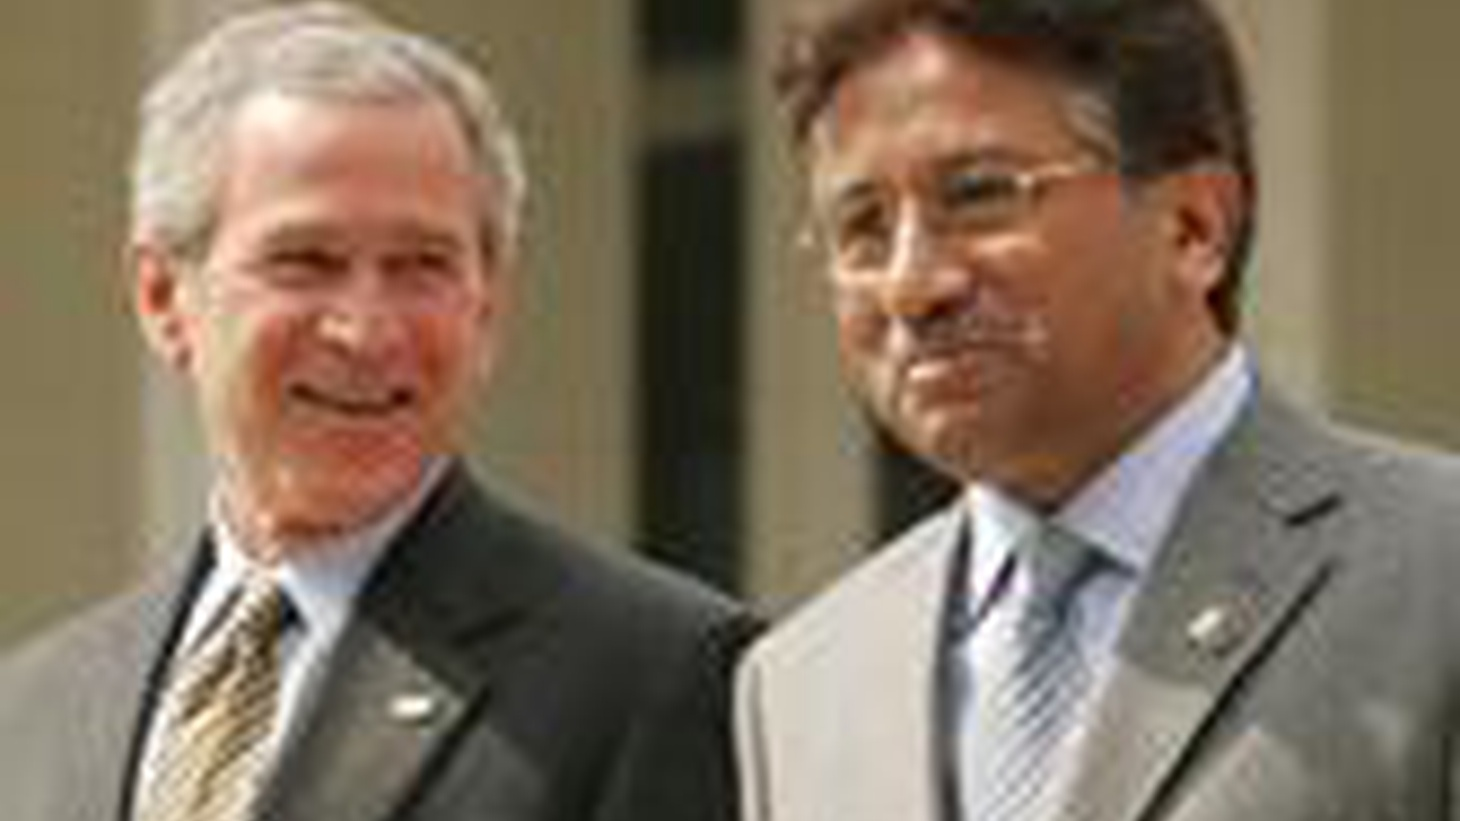 President Musharraf of Pakistan surprised the world today with his announcement that he would not show up tomorrow to meet with Afganistan's President Karzai—something President Bush was very much hoping would happen.